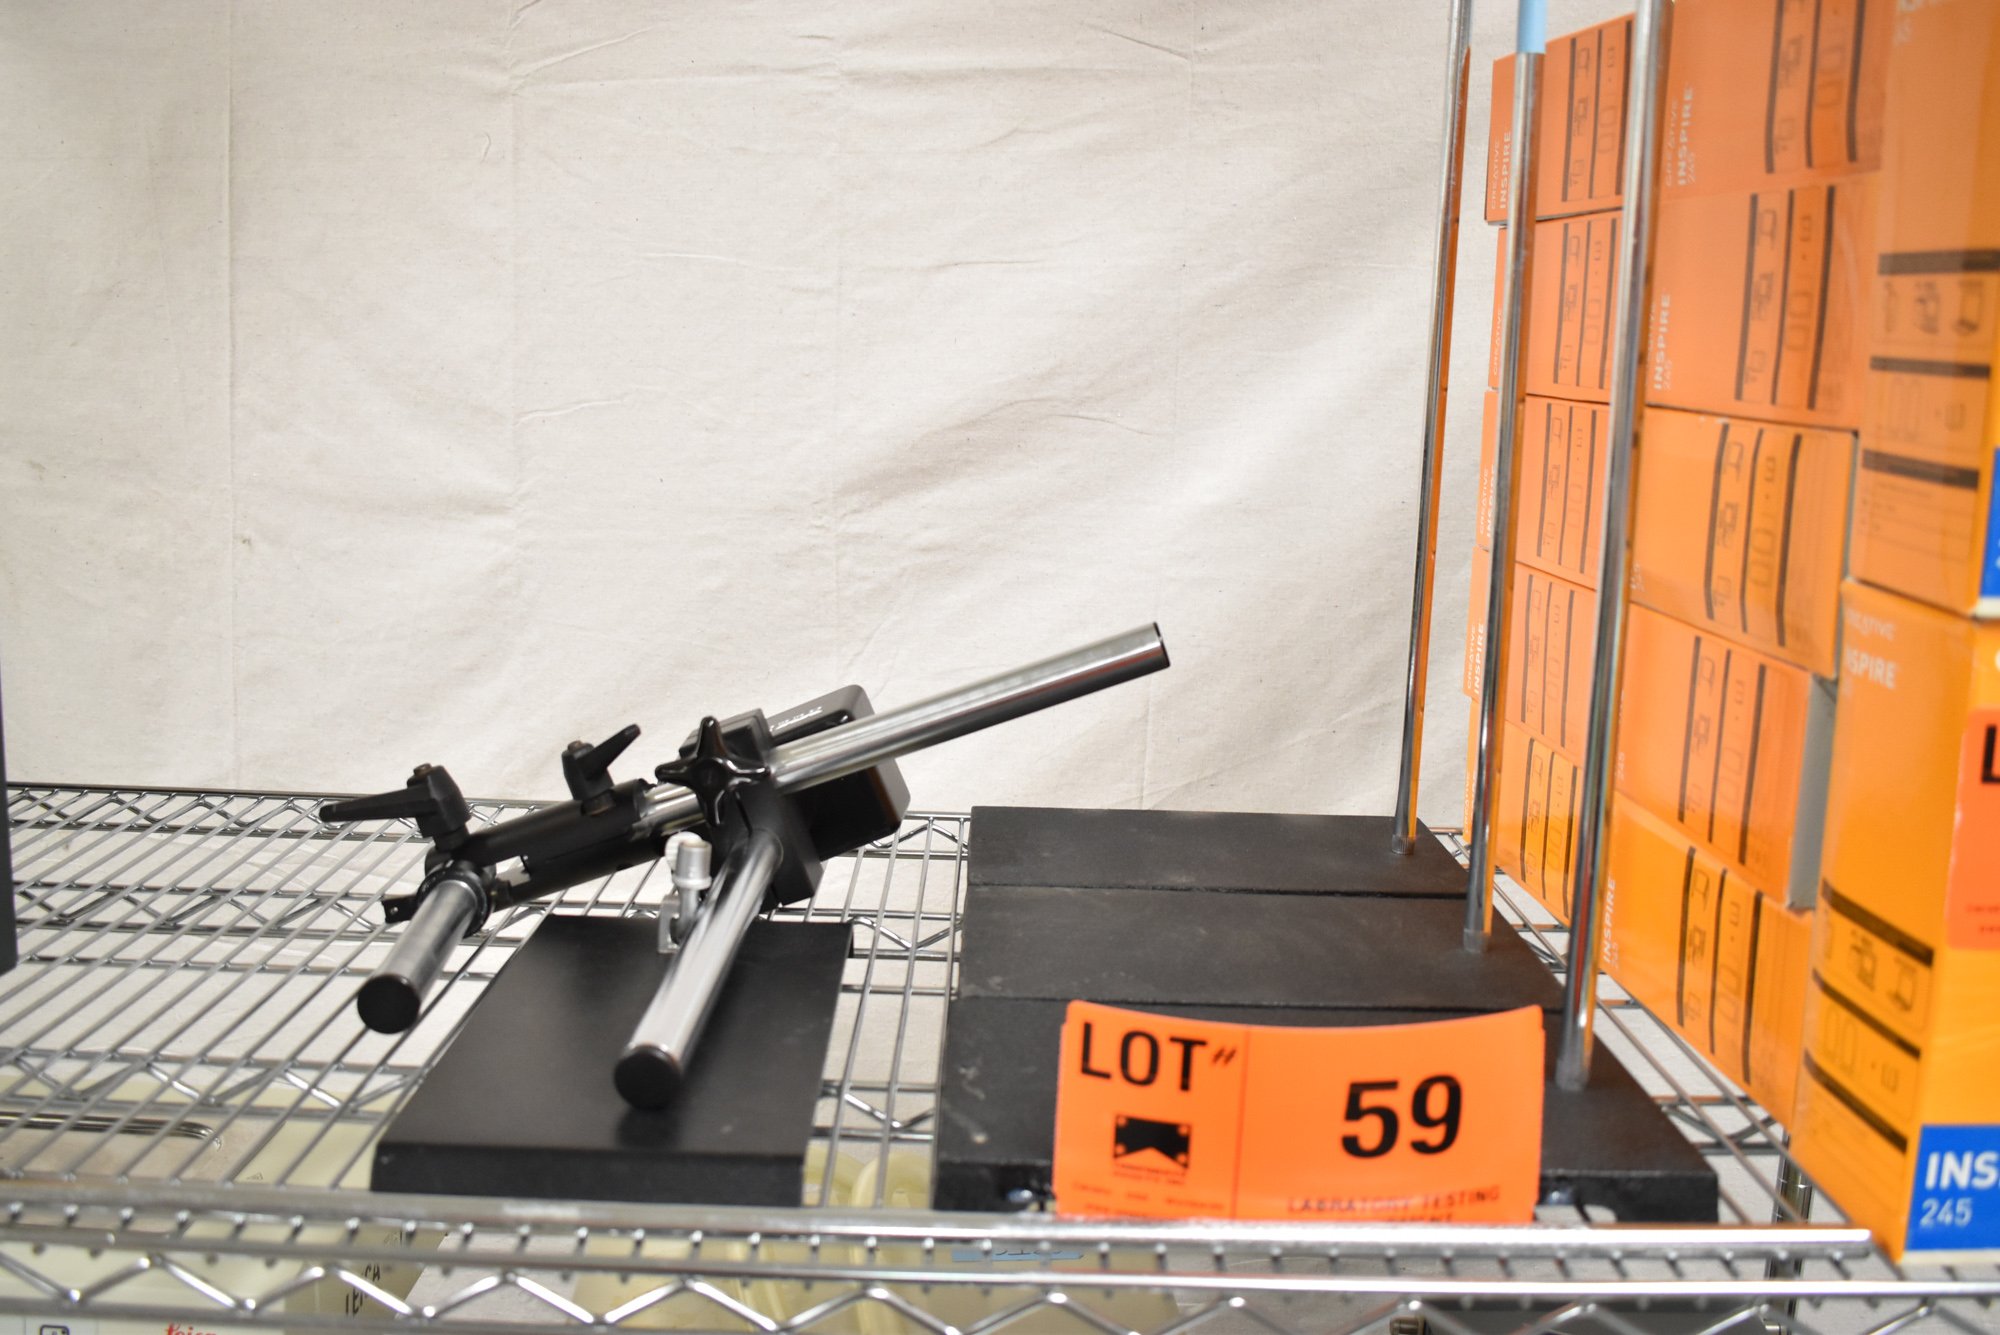 LOT/ LAB STANDS [$10 USD OPTIONAL LOADING FEE - CONTACT PICKUP@CORPASSETS.COM FOR DETAILS]